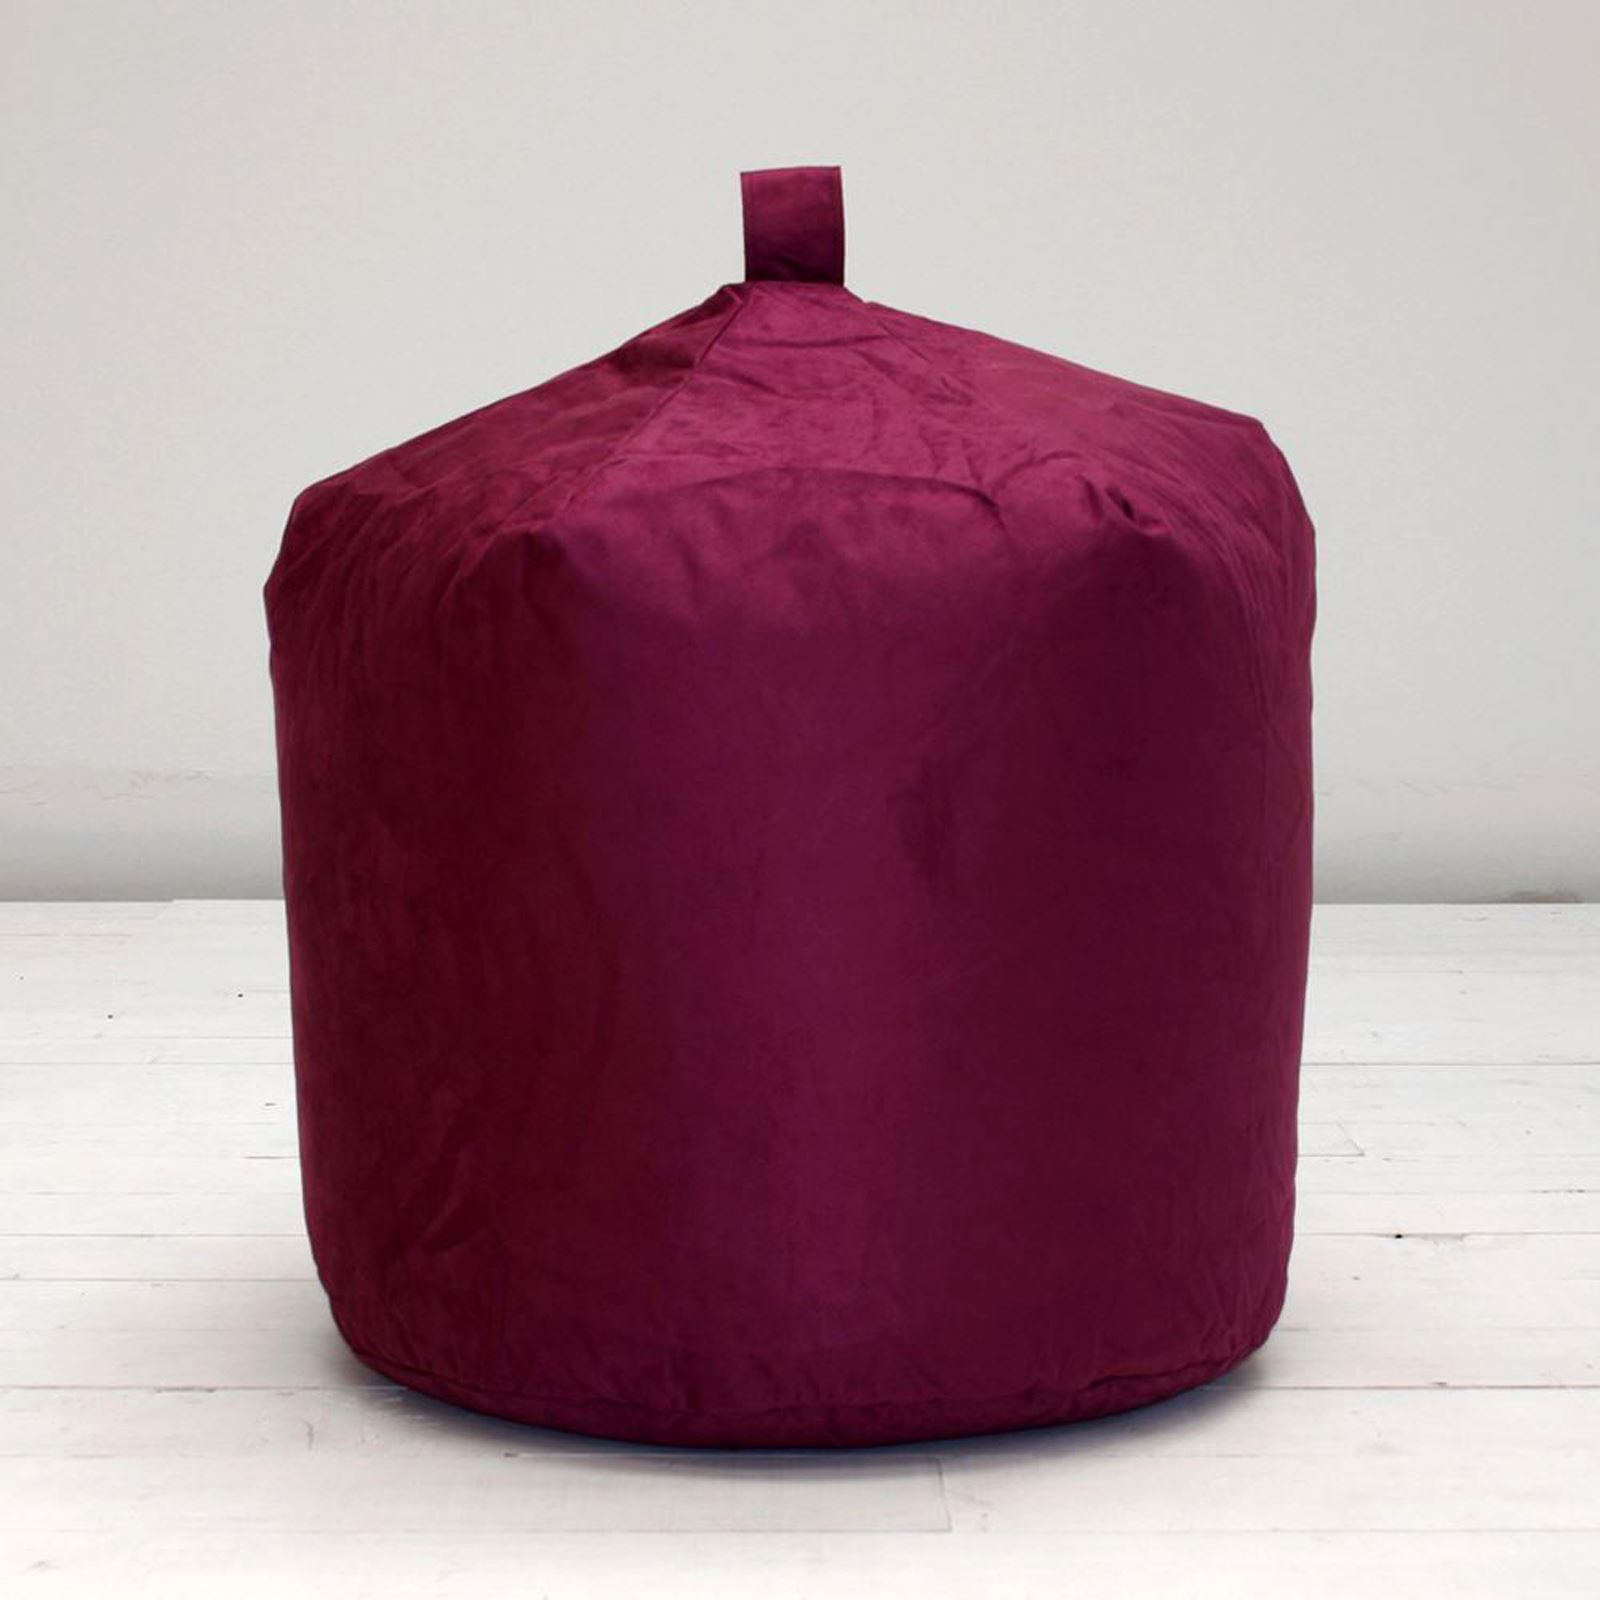 Faux-Suede-Bean-Bag-Blue-Teal-Purple-Tan-Terracotta-Brown-Orange-Seat-Chair